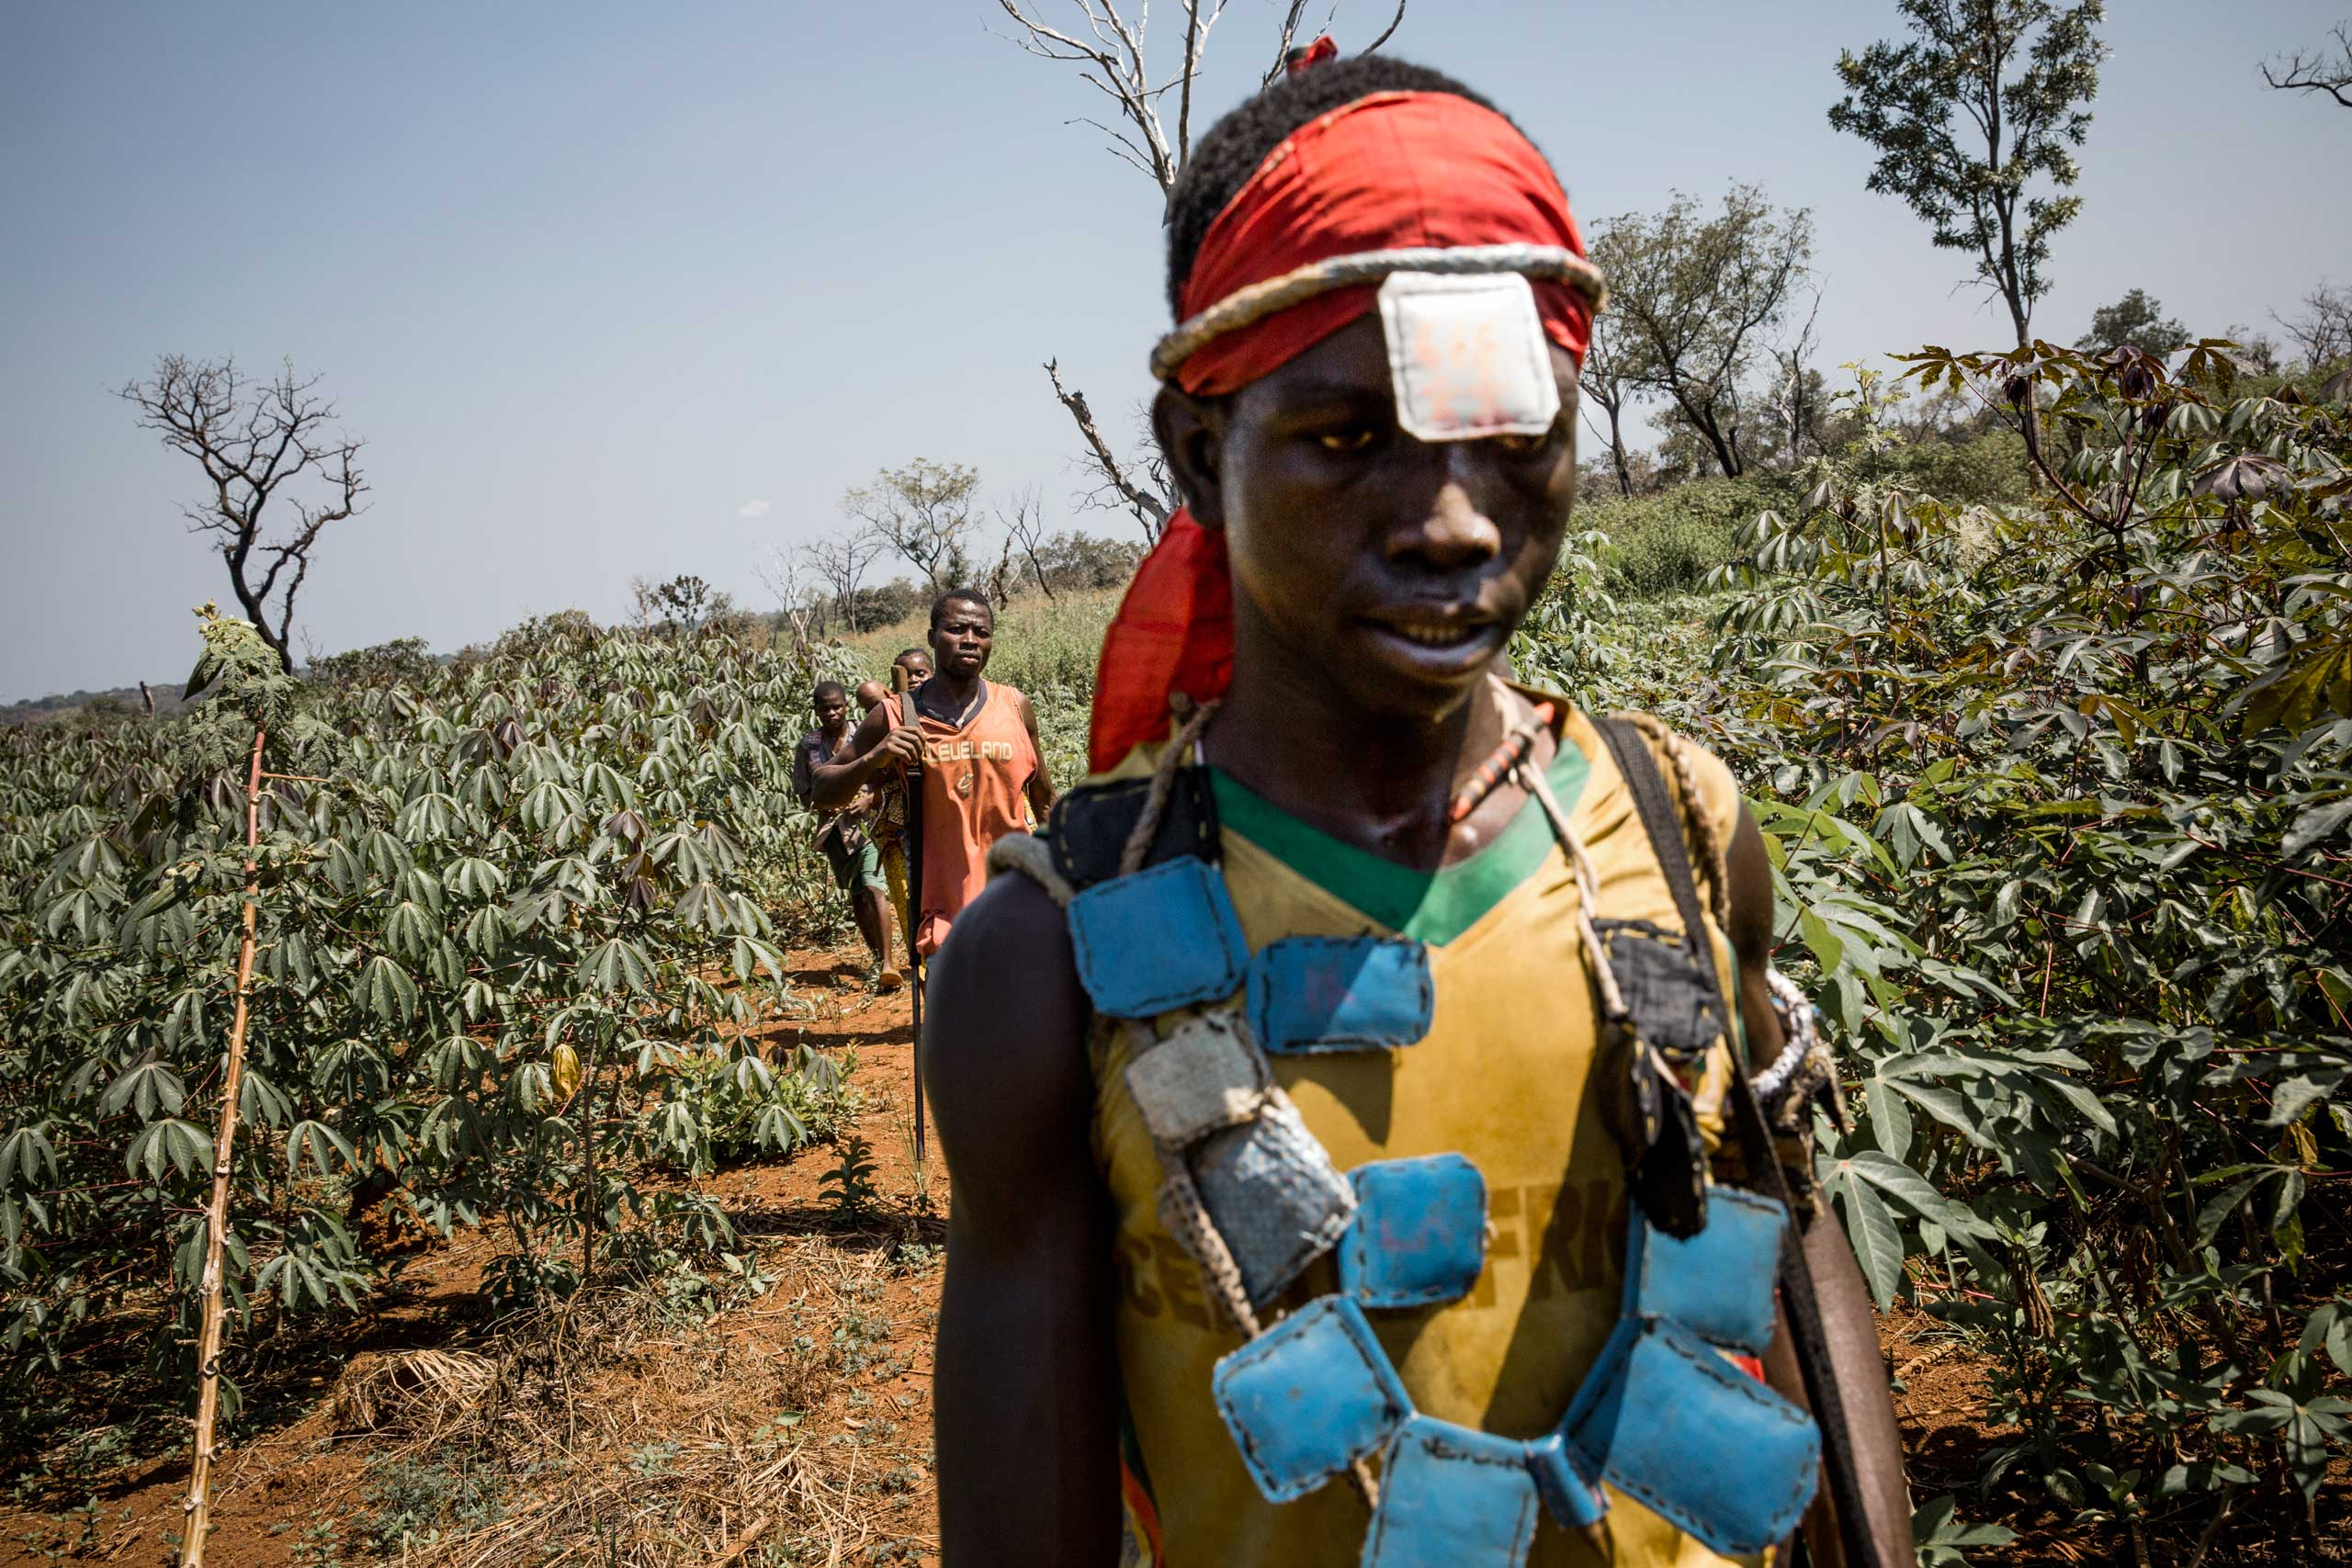 Anti-balaka fighters are seen in the bush between Bossangoa and Bossembelé. Central African Republic. Nov. 21, 2013.